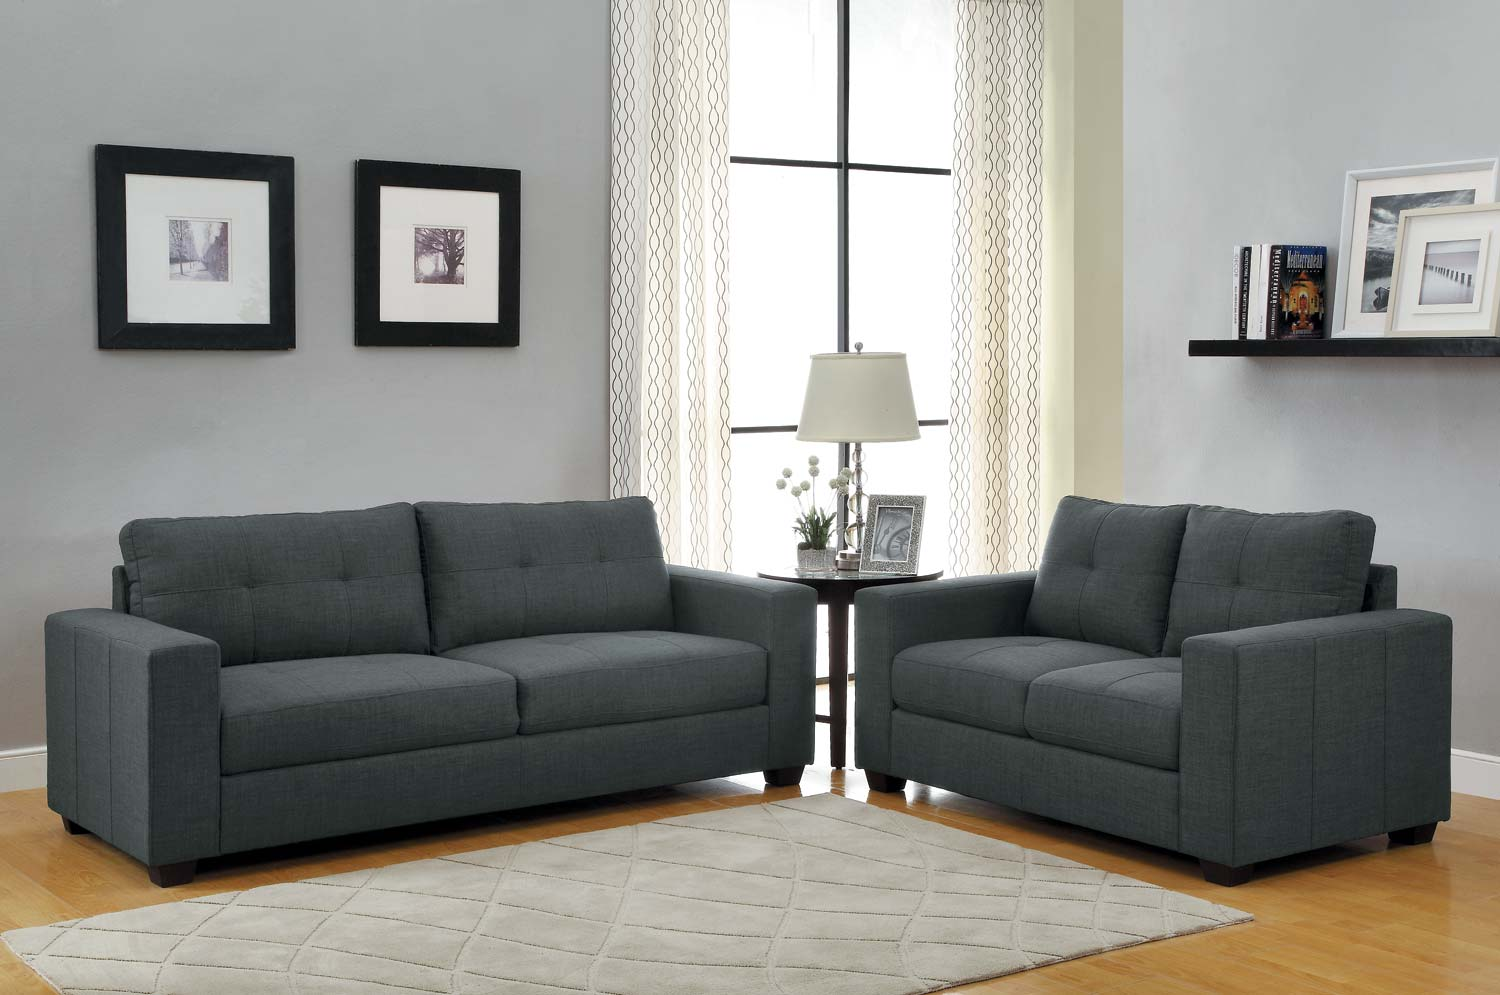 Homelegance Ashmont Sofa Set Dark Grey Linen U9639 3